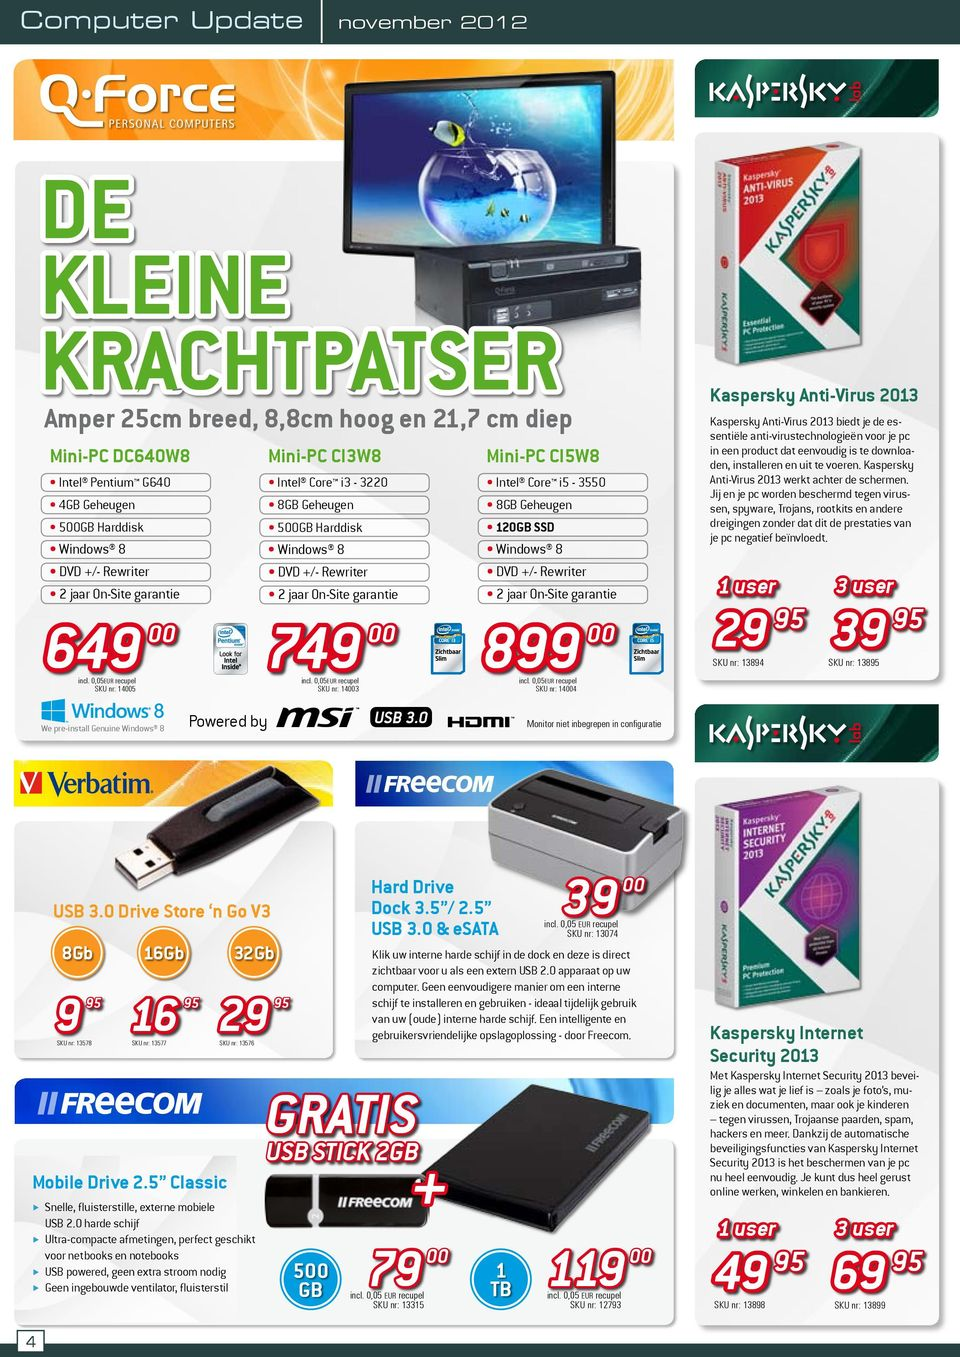 Rewriter 2 jaar On-Site garantie SKU nr: 144 Kaspersky Anti-Virus 2013 Kaspersky Anti-Virus 2013 biedt je de essentiële anti-virustechnologieën voor je pc in een product dat eenvoudig is te